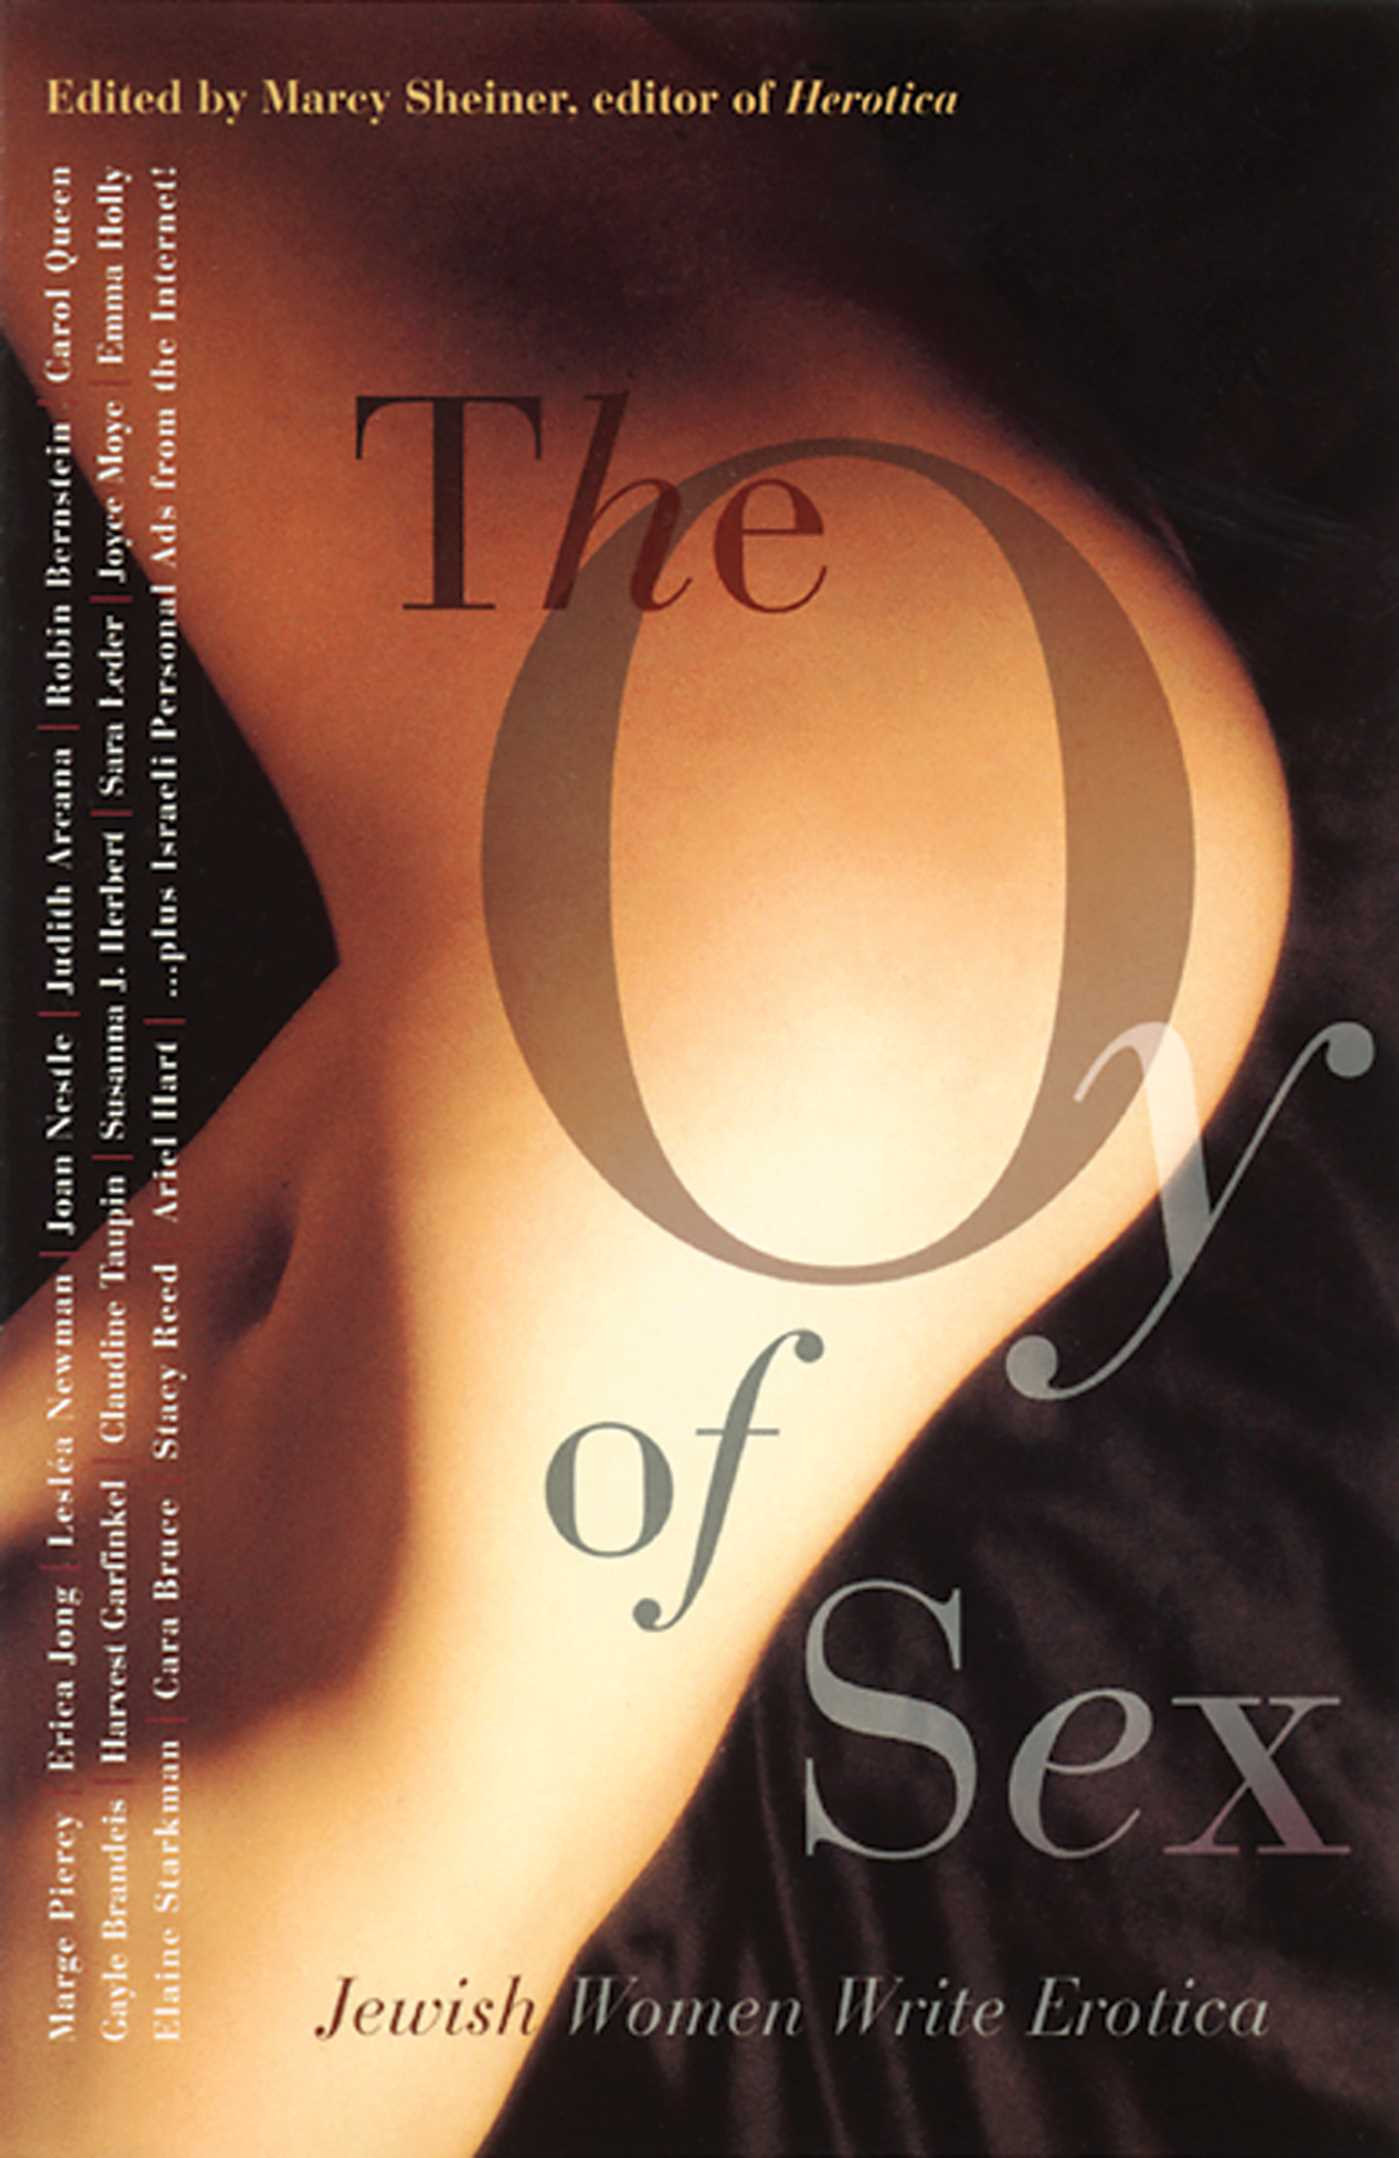 The oy of sex 9781573448871 hr